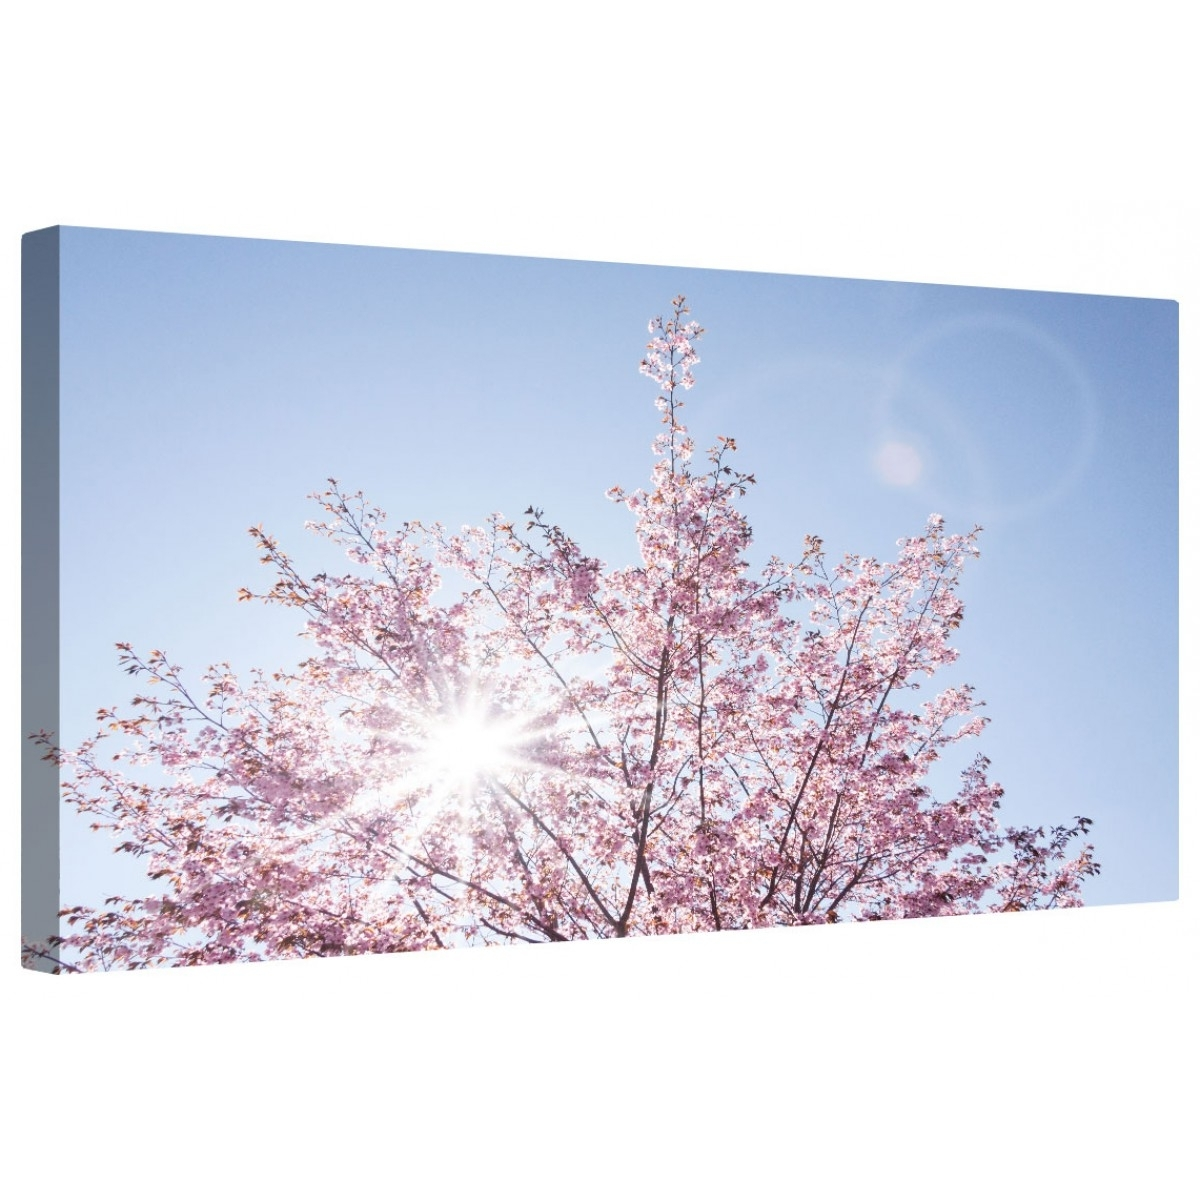 Sunlit Cherry Blossom Framed Canvas Wall Art Picture (View 16 of 20)